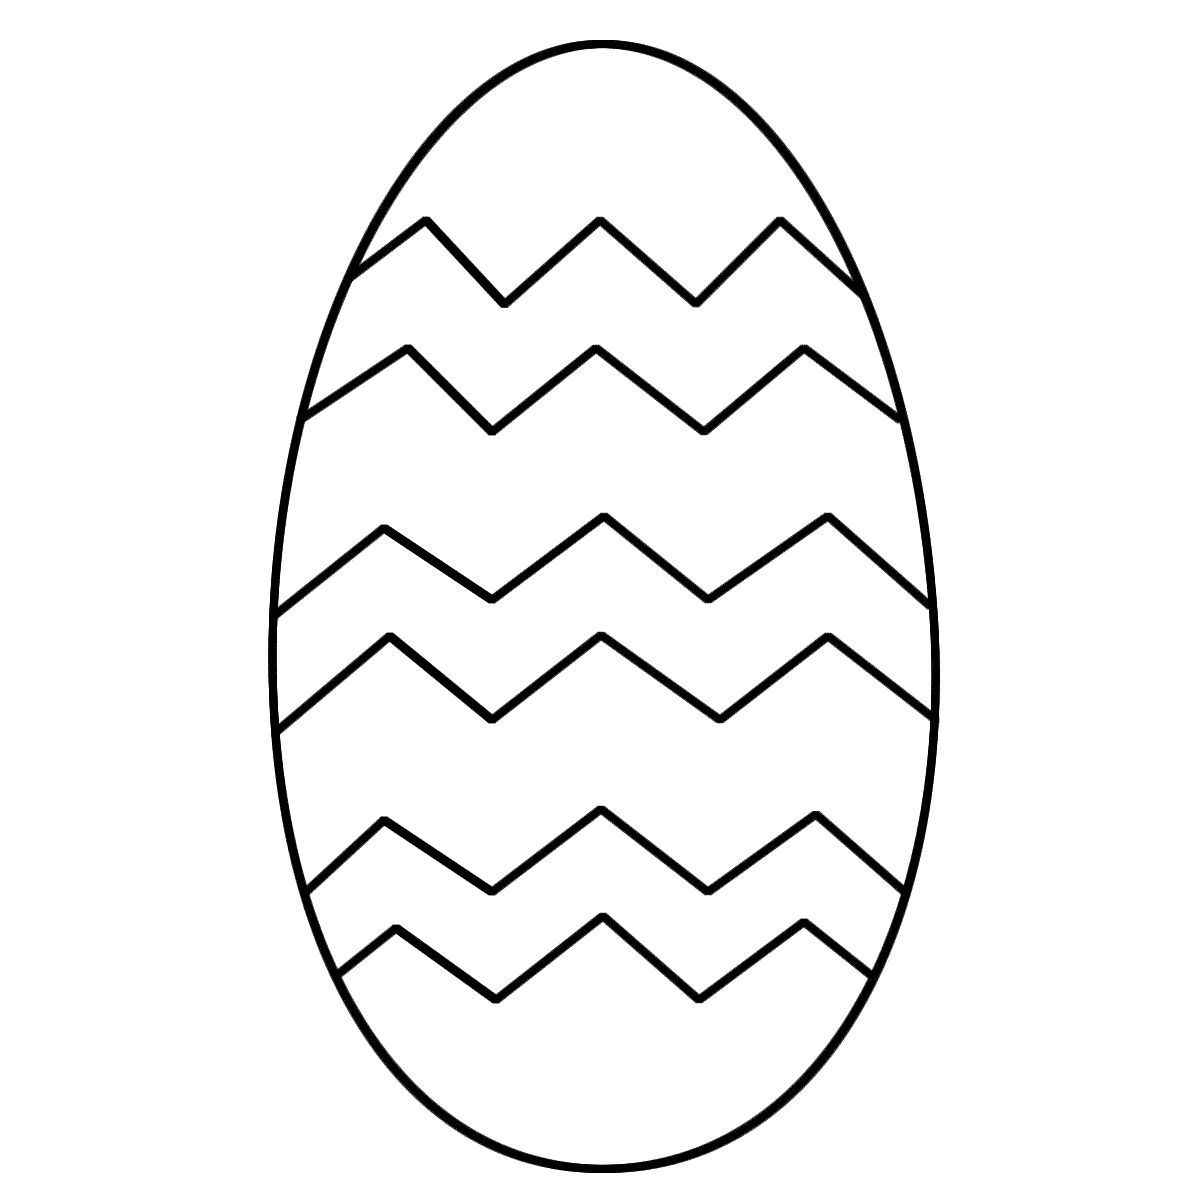 1443380526_easter-chocolate-coloring-pages-coloring-page-42.jpg ...